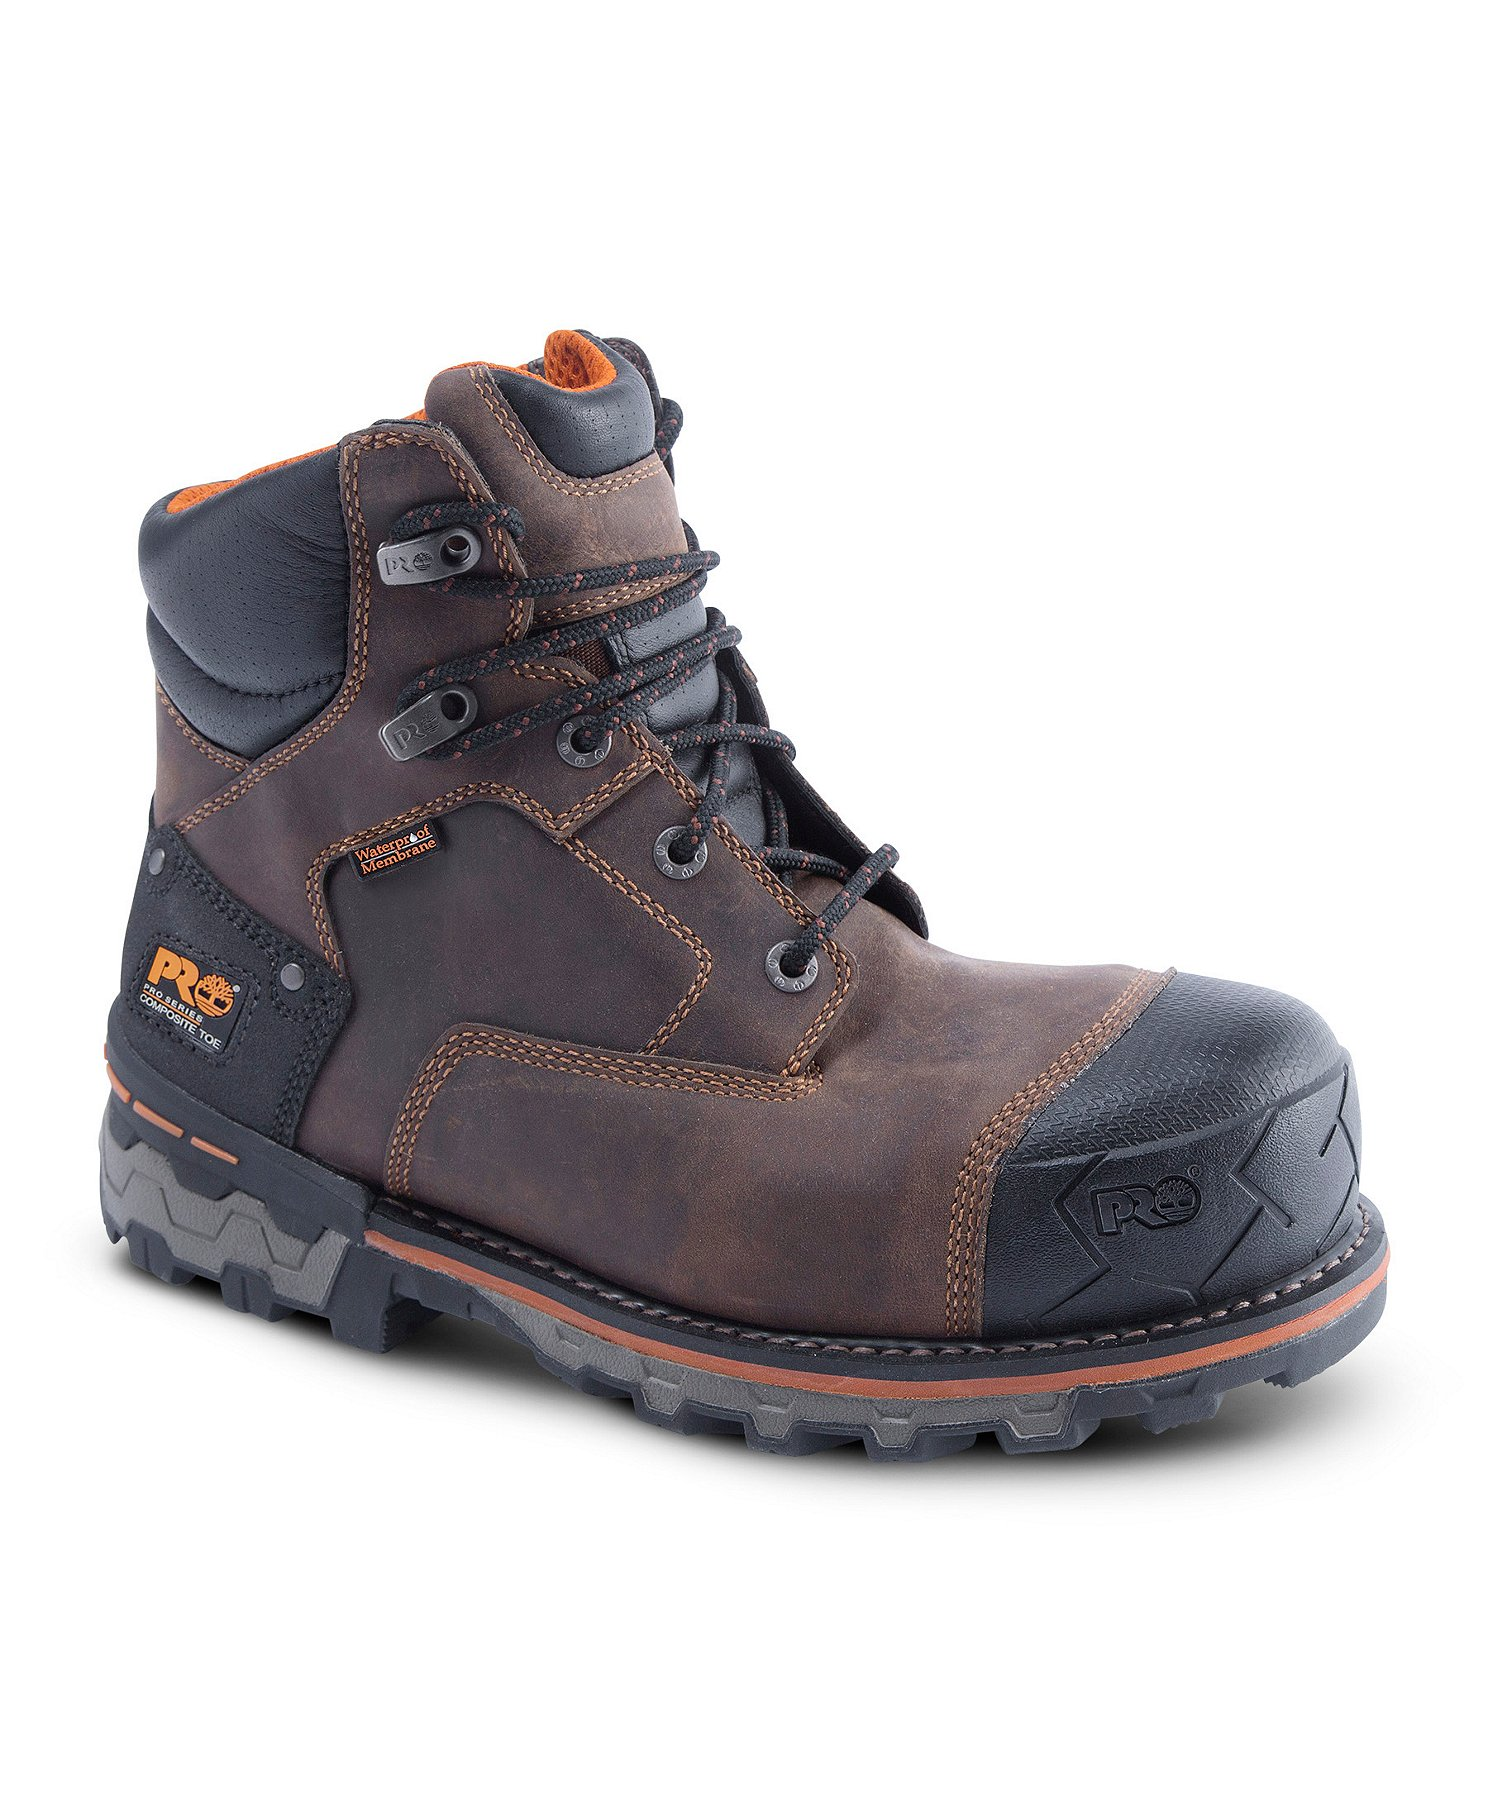 first look buy ever popular Mens 6'' Boondock Composite Toe Composite Plate Waterproof Work Boots